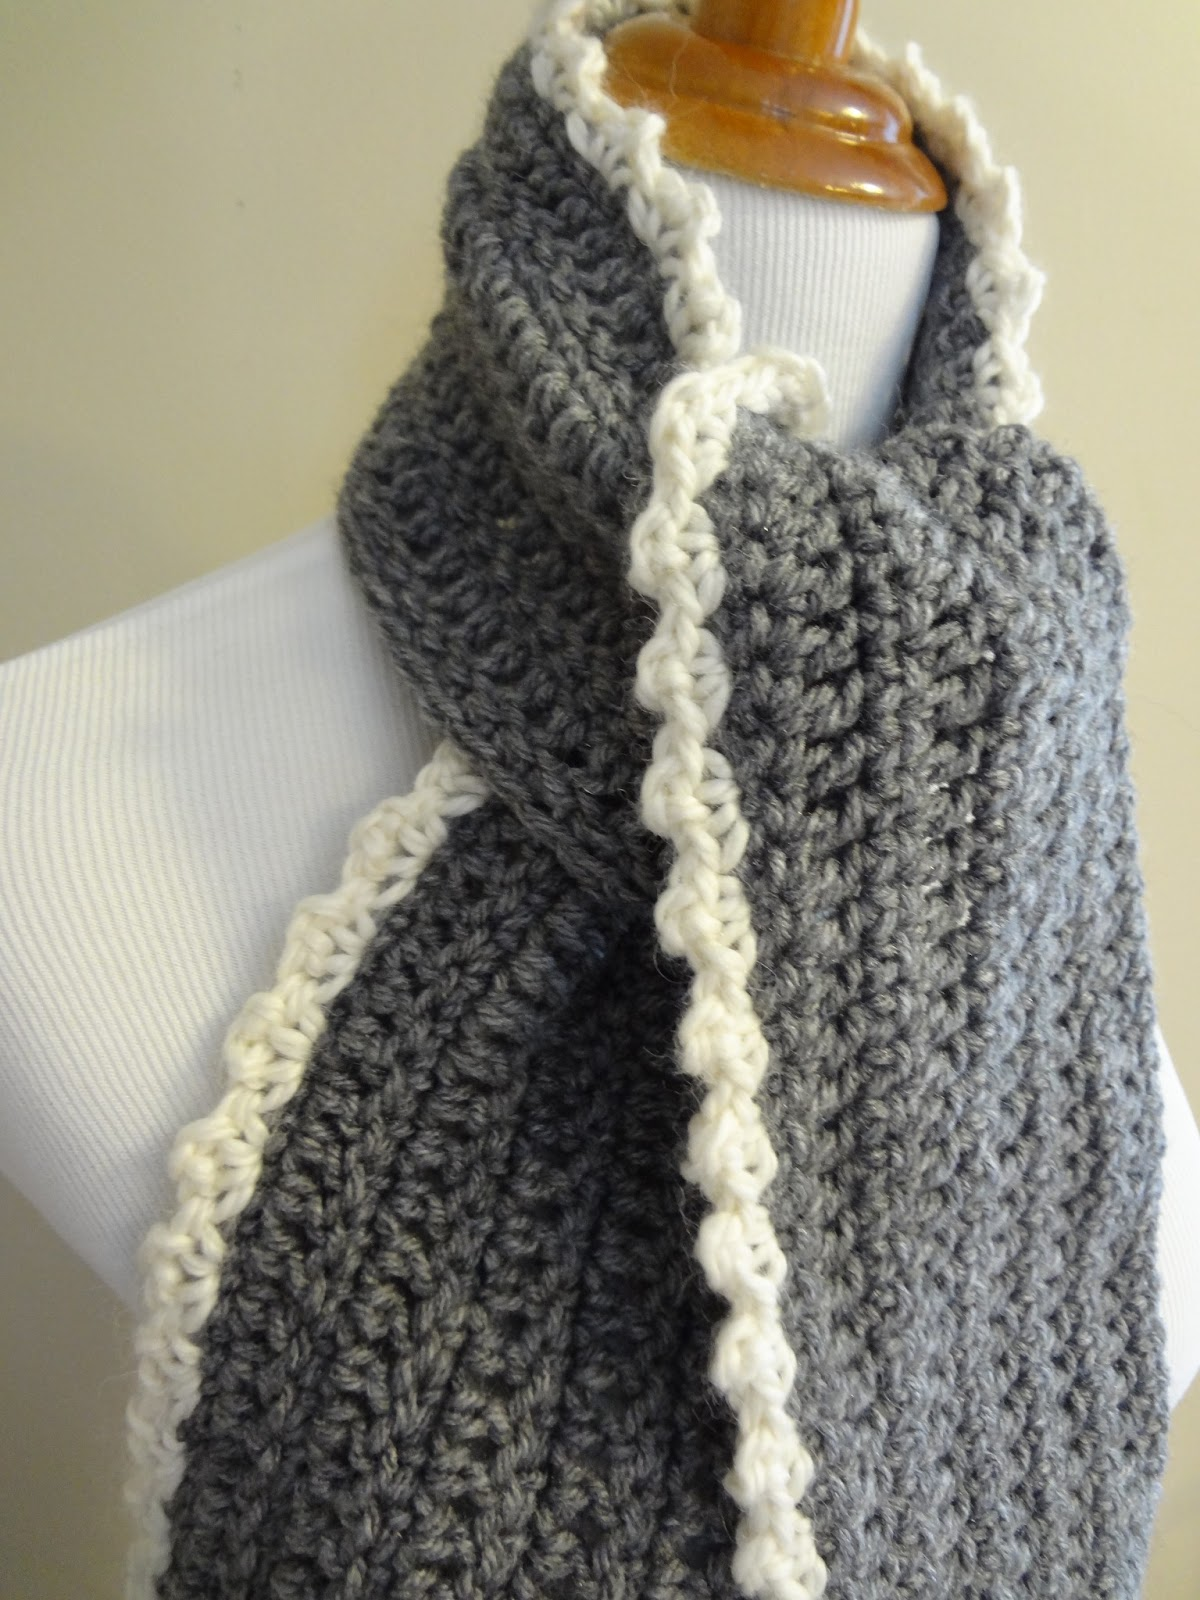 Crochet Scarf Pattern With Pictures : Fiber Flux: Free Crochet Pattern...Ingrid Scarf